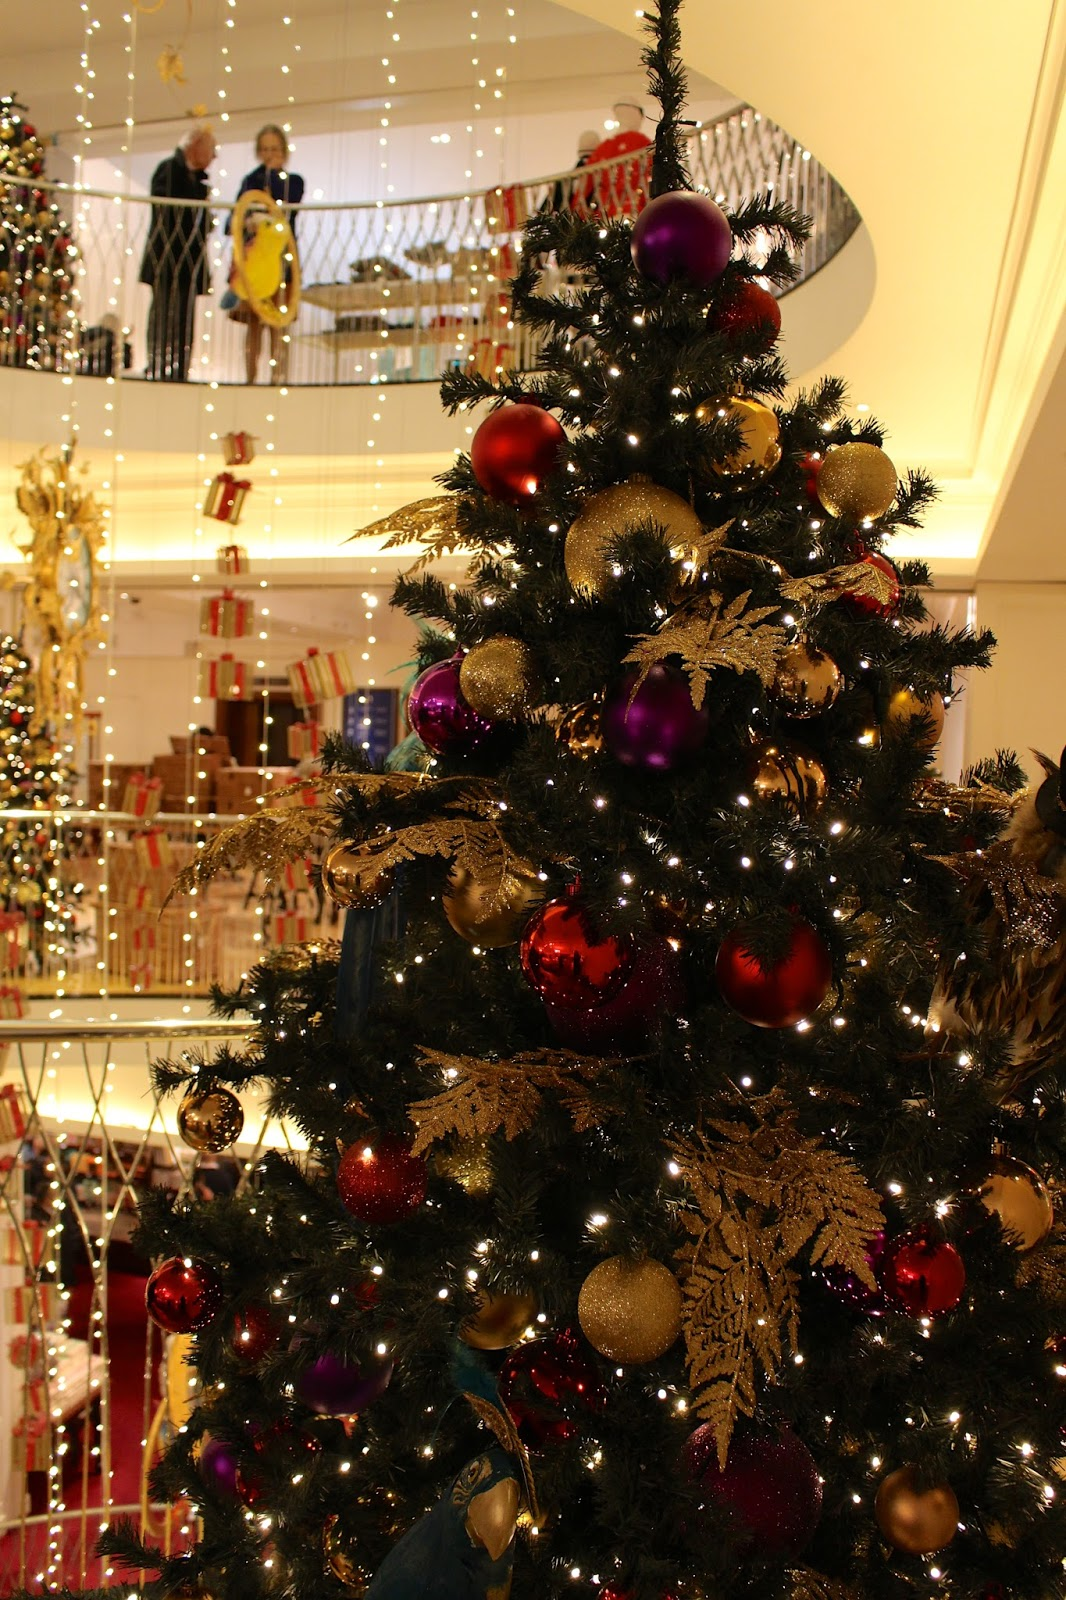 fortnum & mason christmas tree